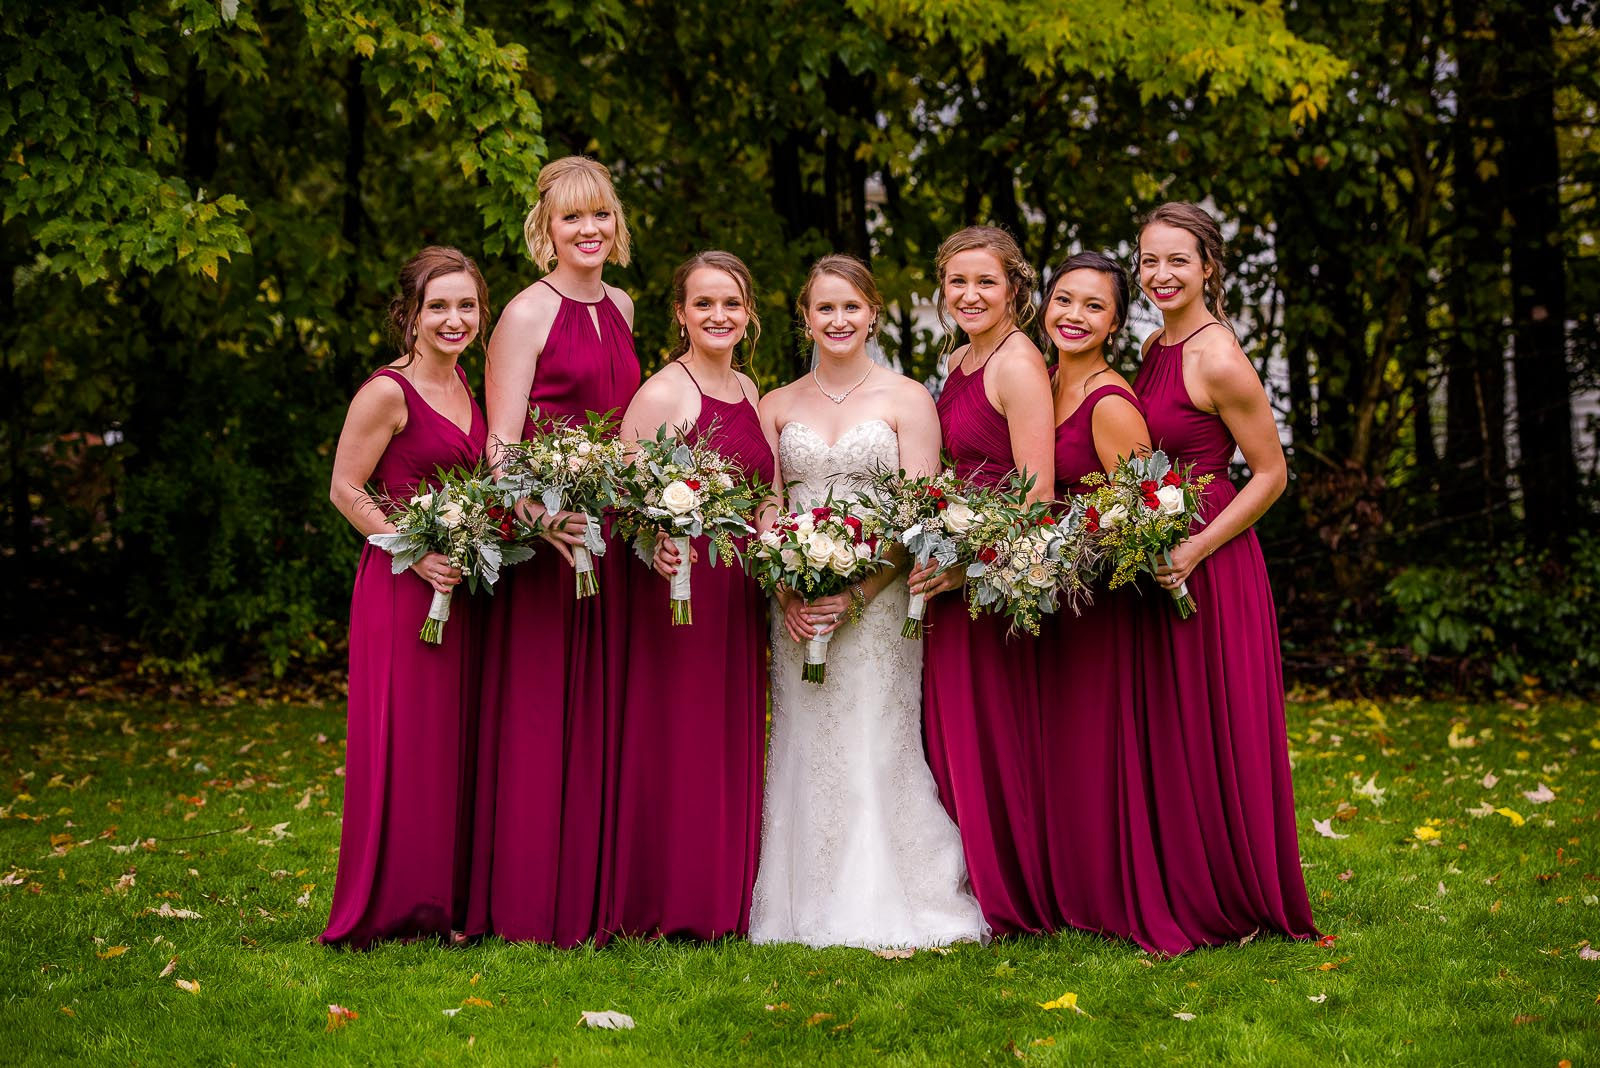 Eric_and_Christy_Photography_Blog_Wedding_Erica_Mike-24